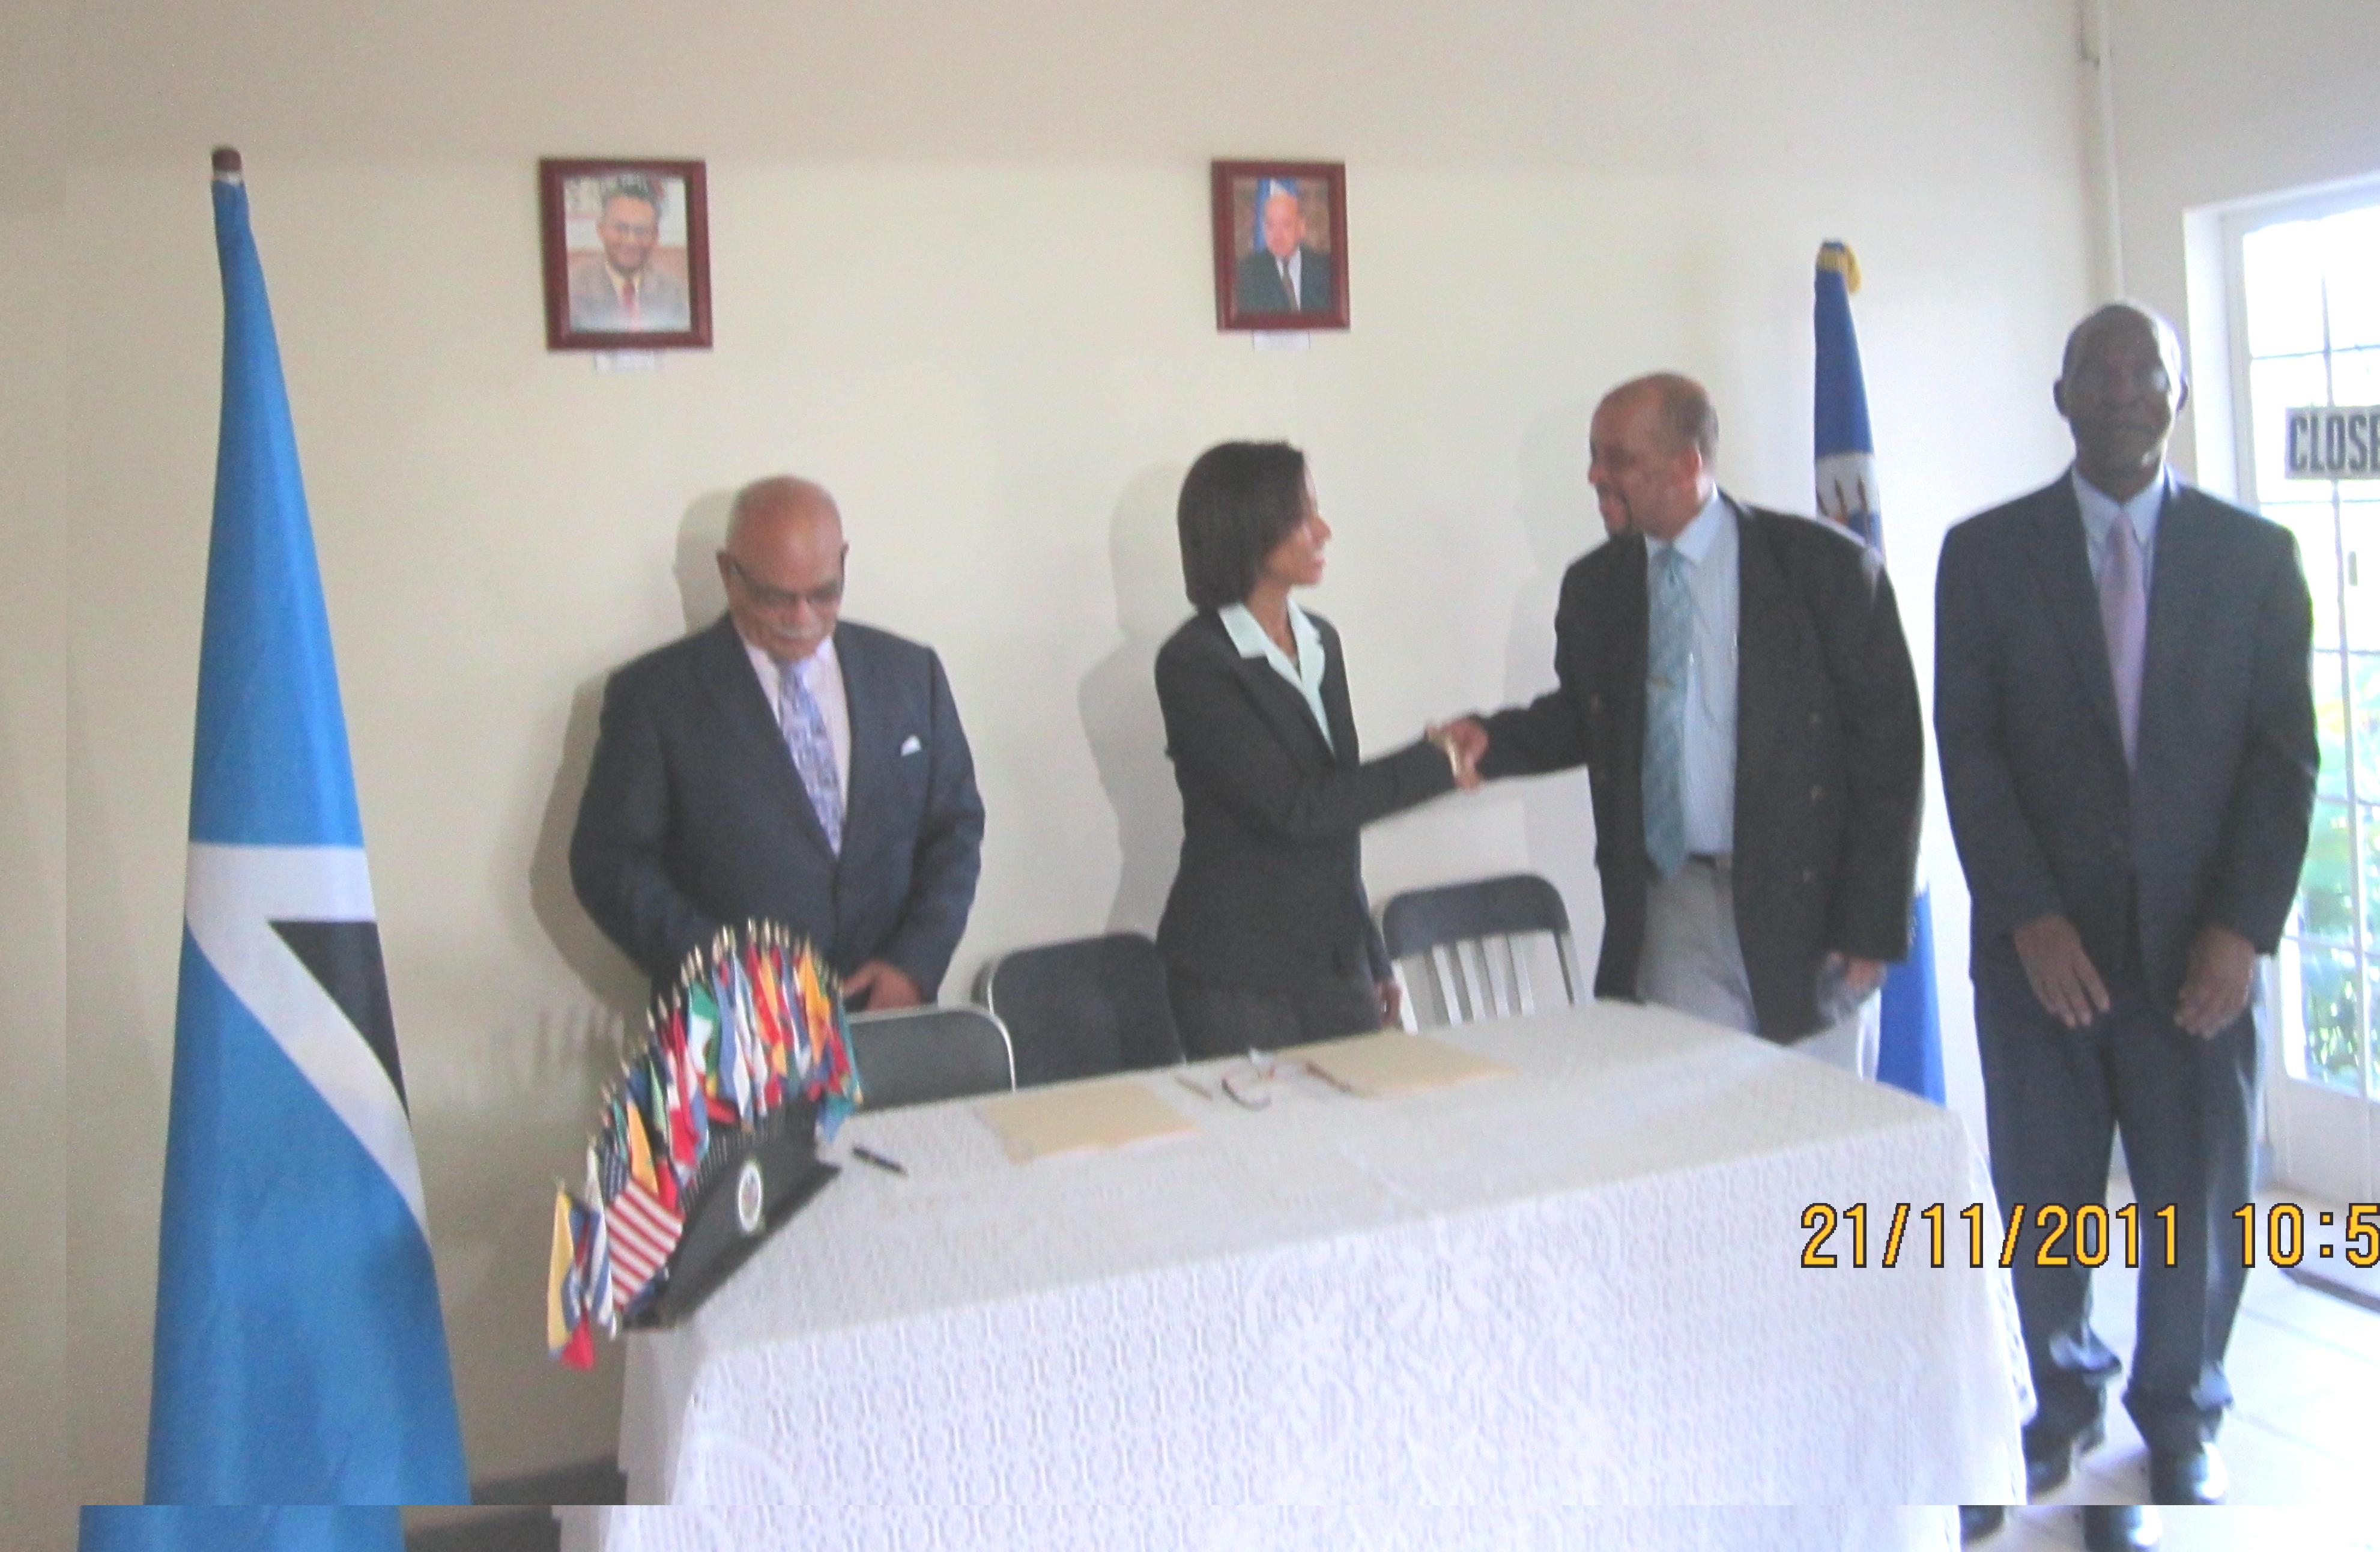 Signature of Election Observation Mission